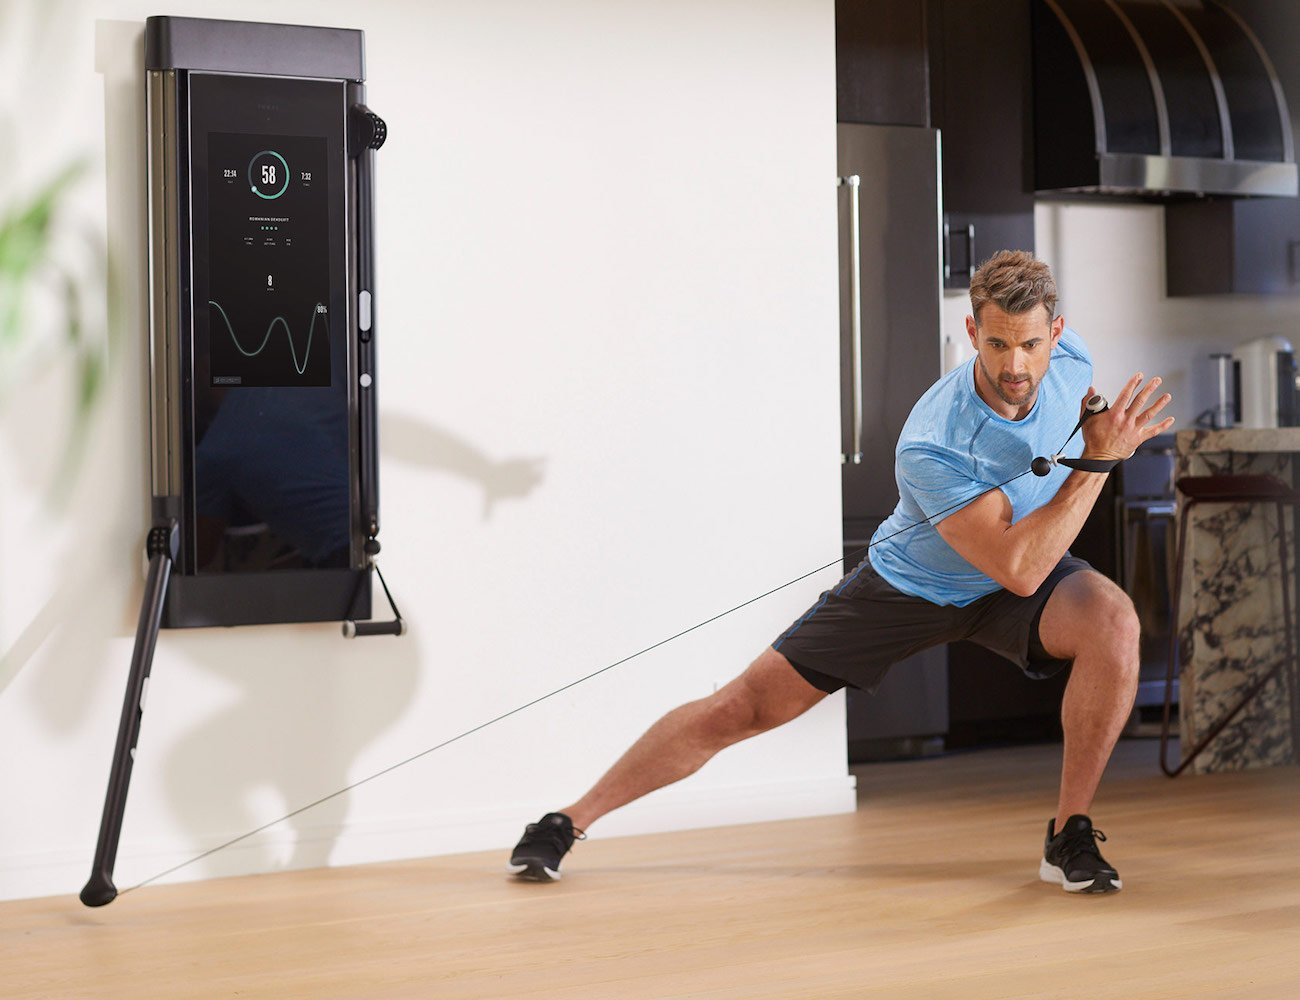 Tonal intelligent fitness system is the future of interactive, at-home exercising